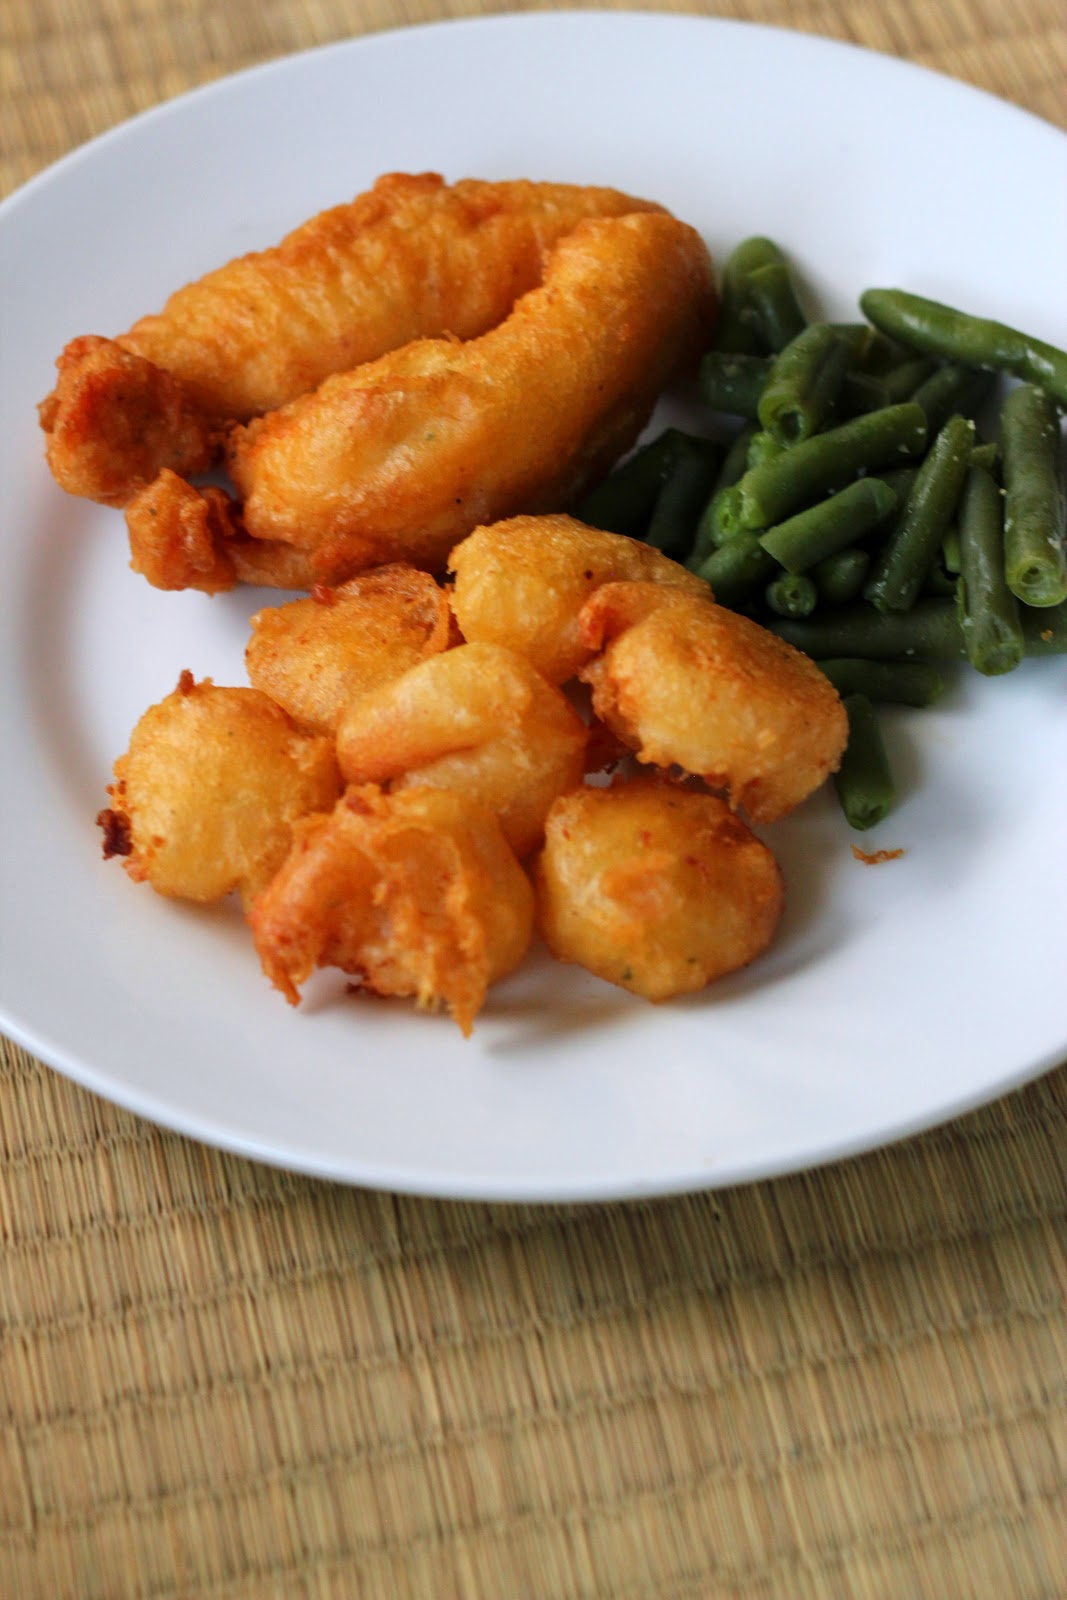 Frying fish or chicken this Lent? Get tips for the perfect batter.